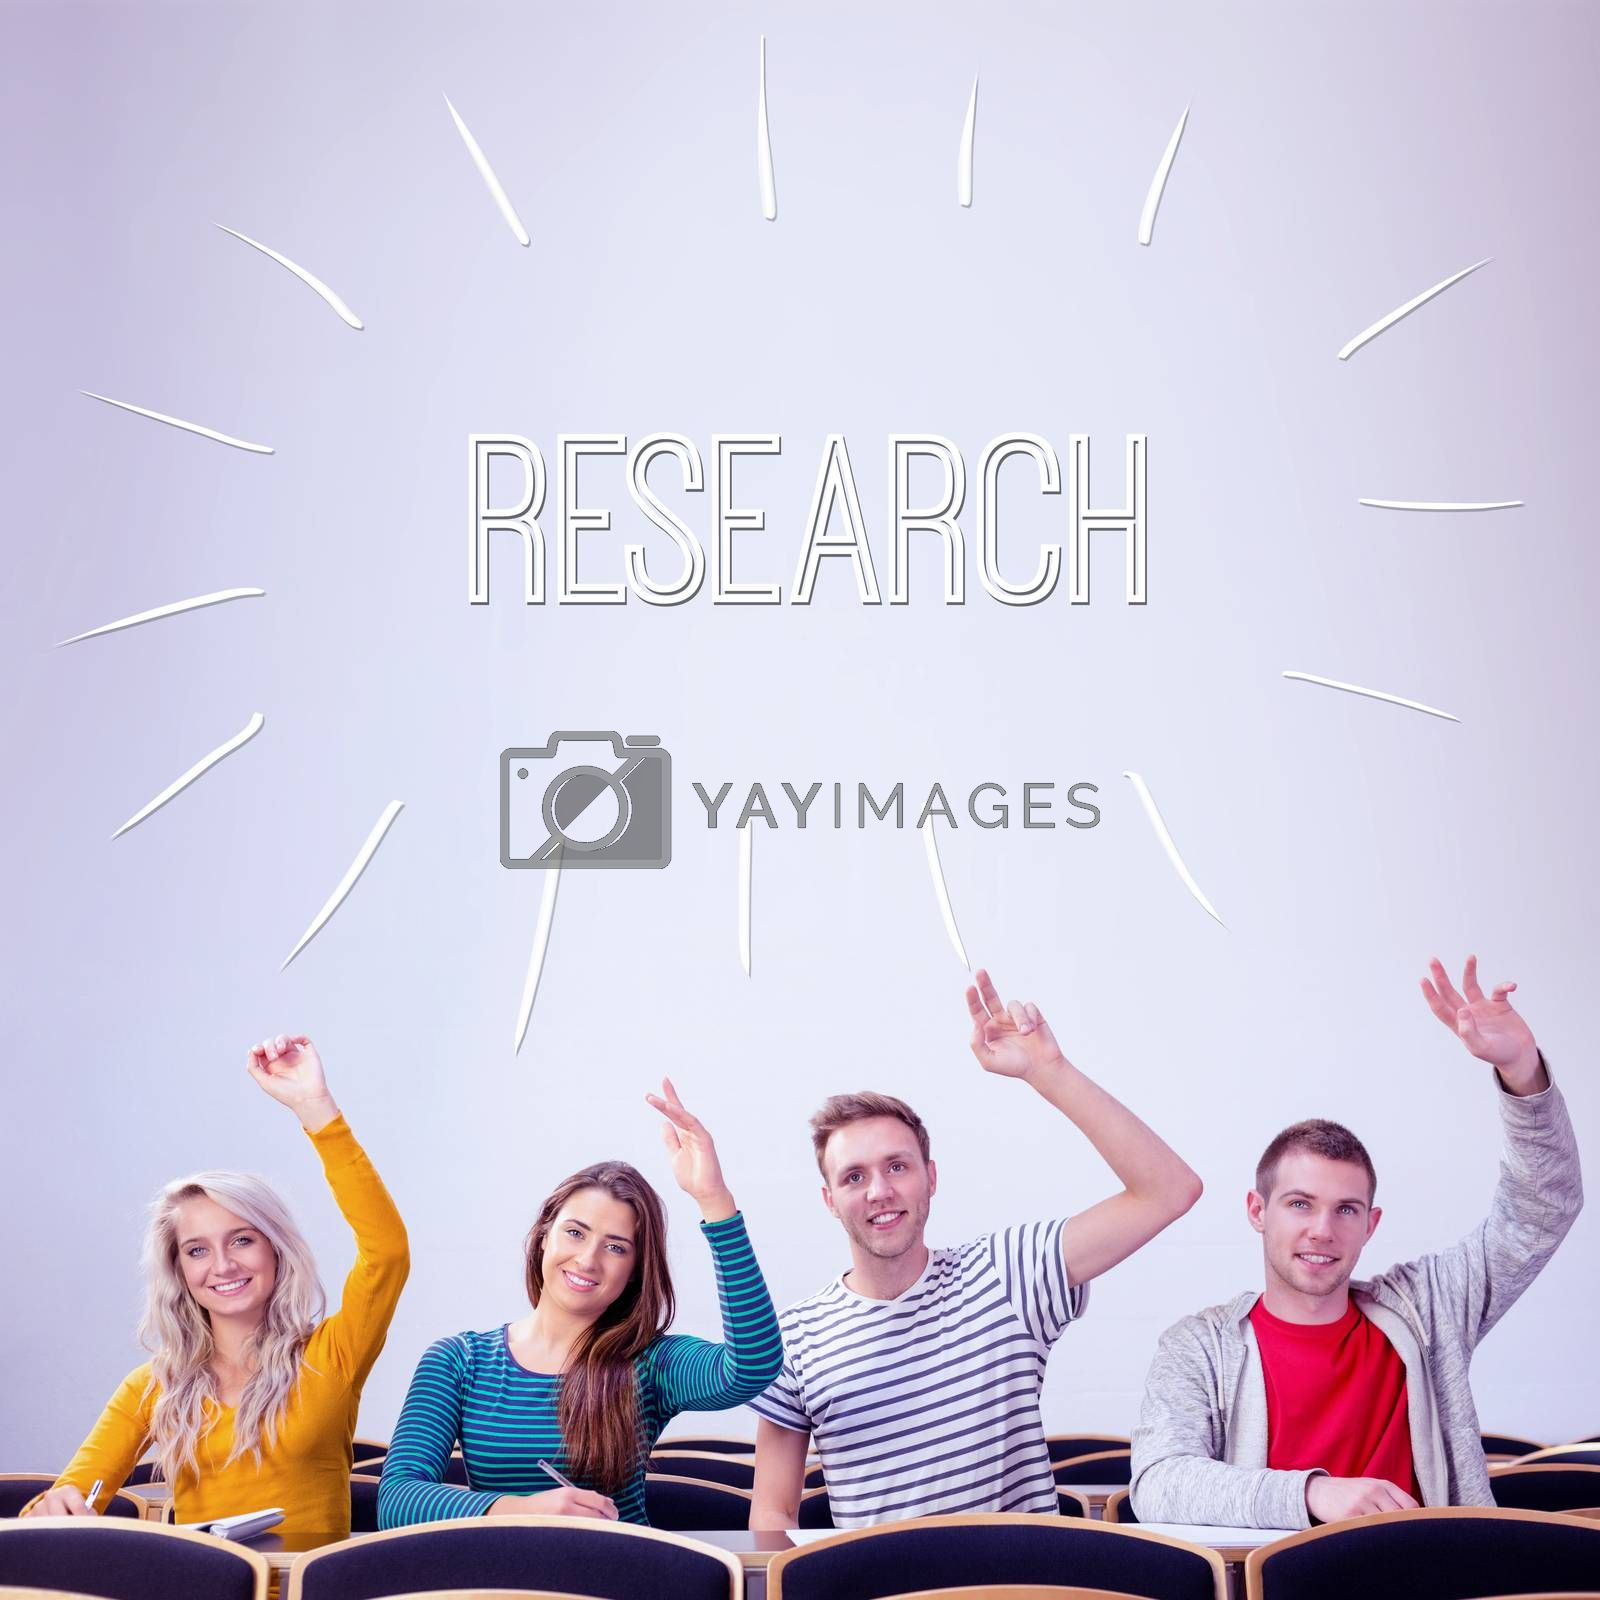 Research against college students raising hands in the classroom by Wavebreakmedia